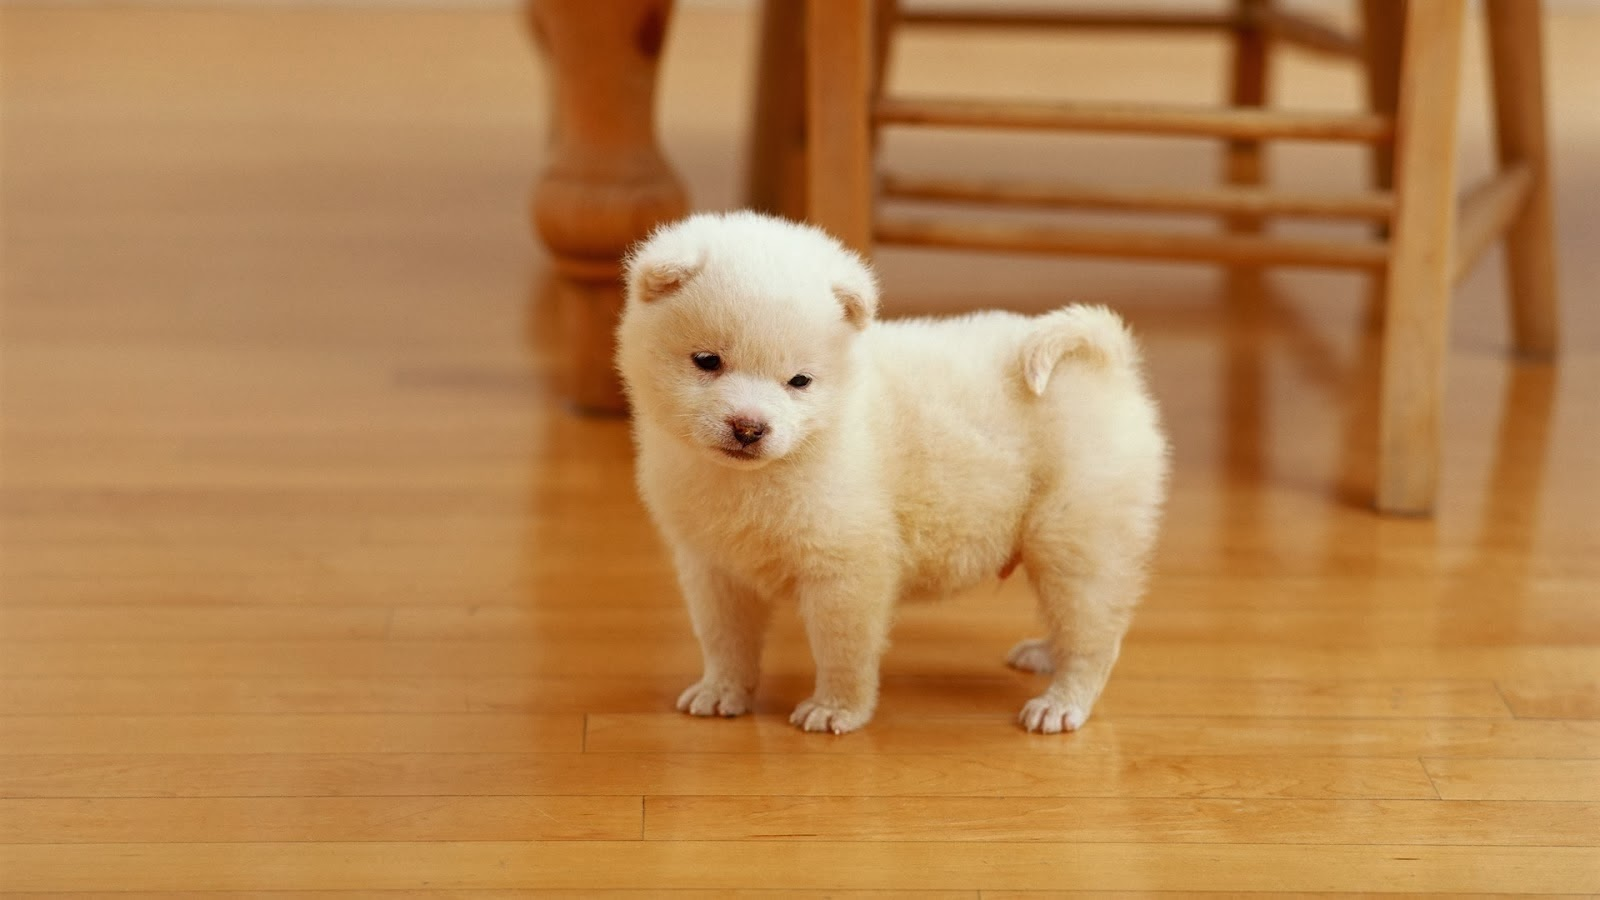 Cute Funny Animalz Funny Cute White Puppies graphy 2013